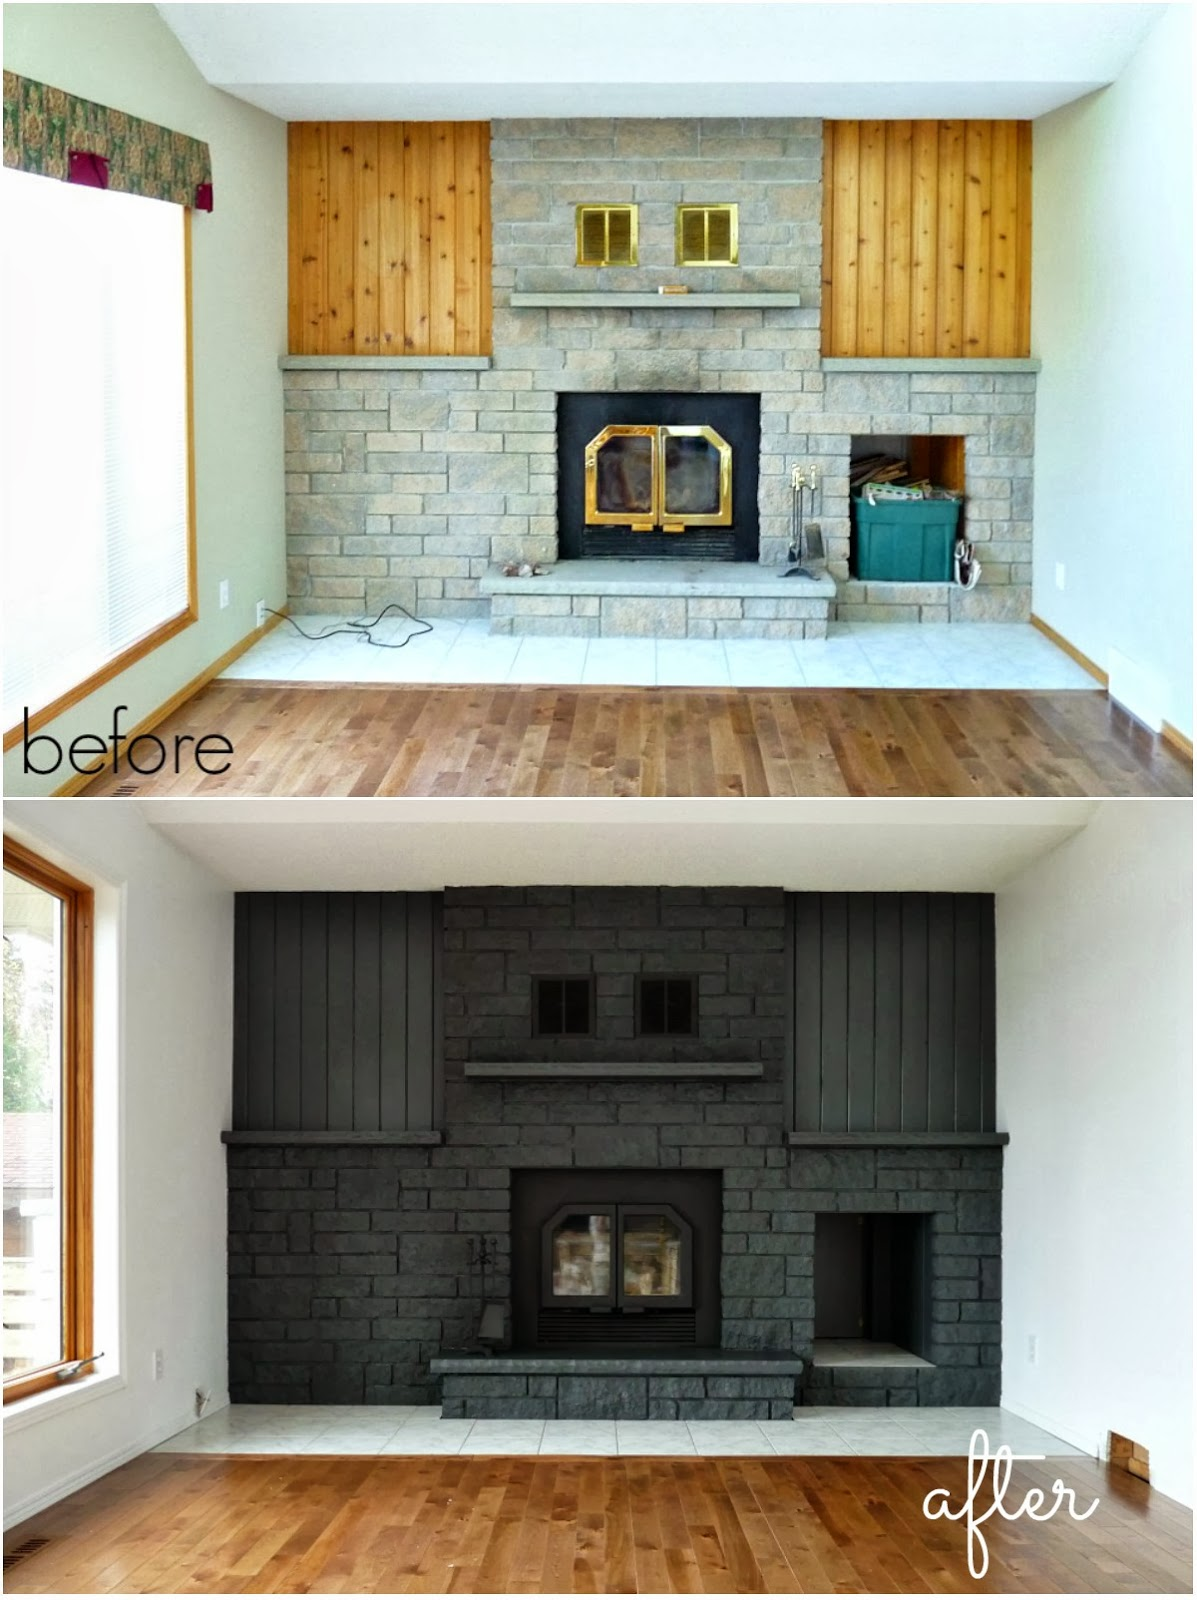 Painting Over Fireplace How To Easily Paint A Stone Fireplace Charcoal Grey